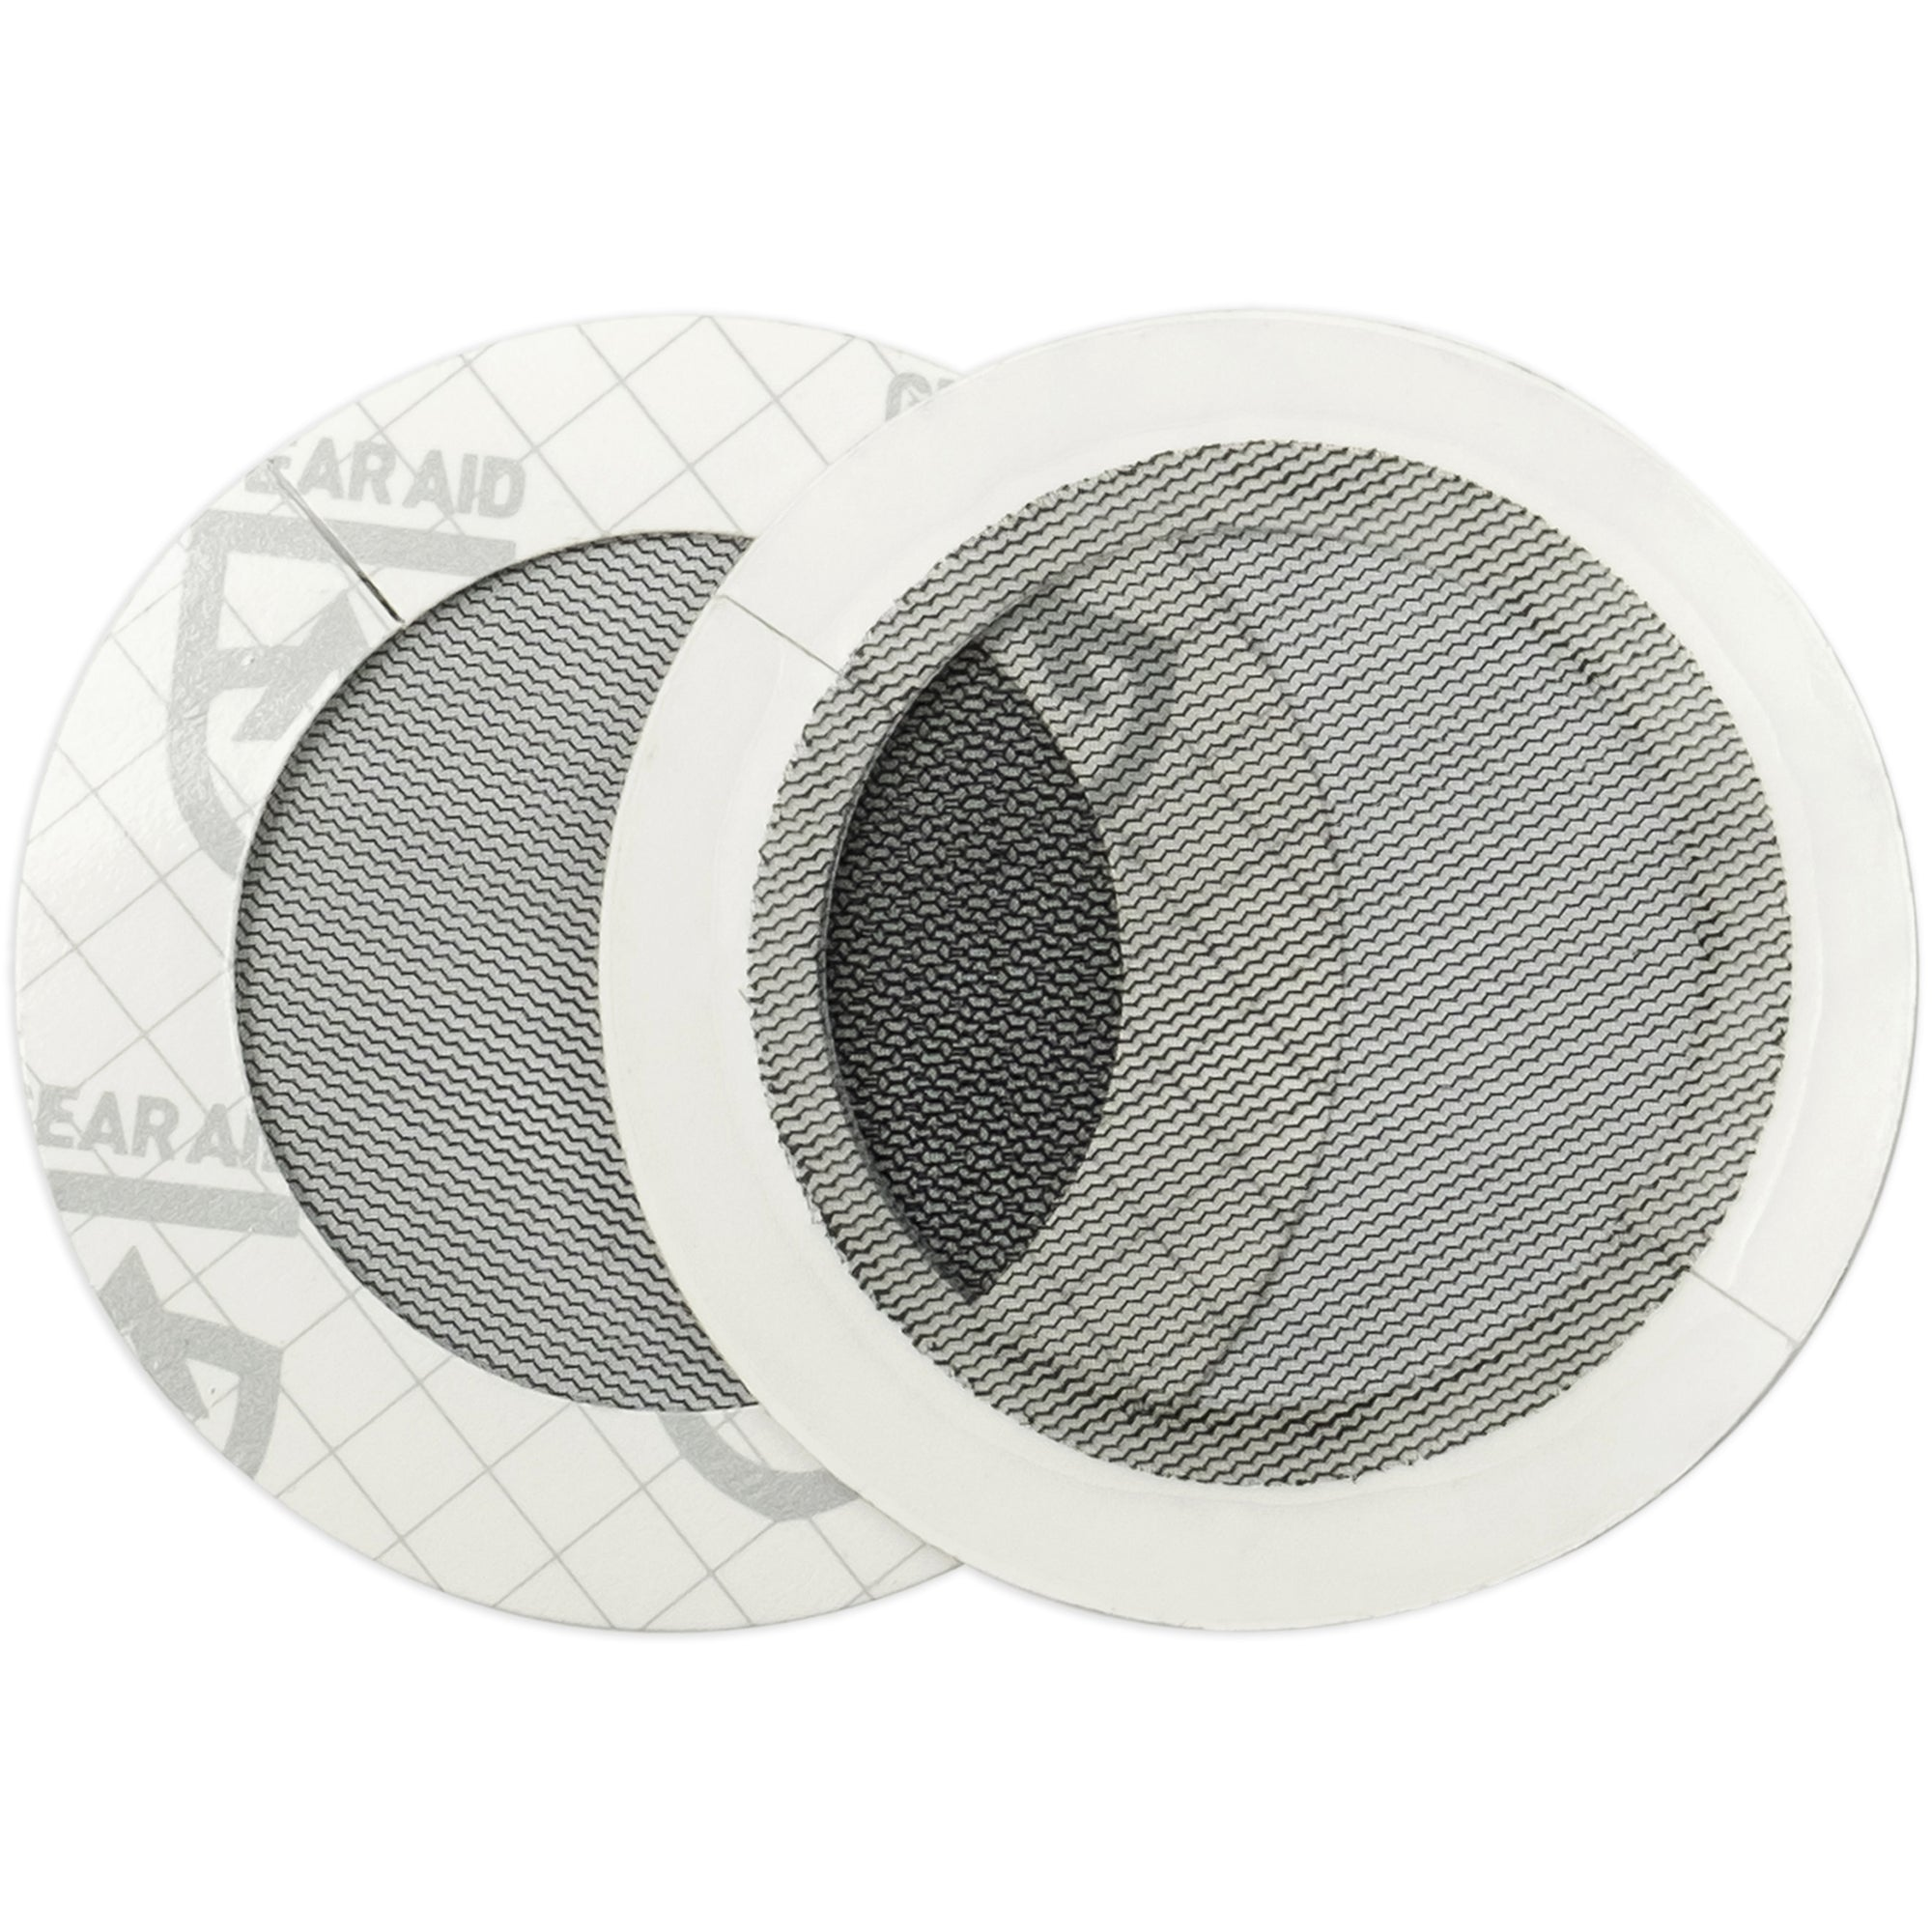 Tenacious Tape Mesh Patches